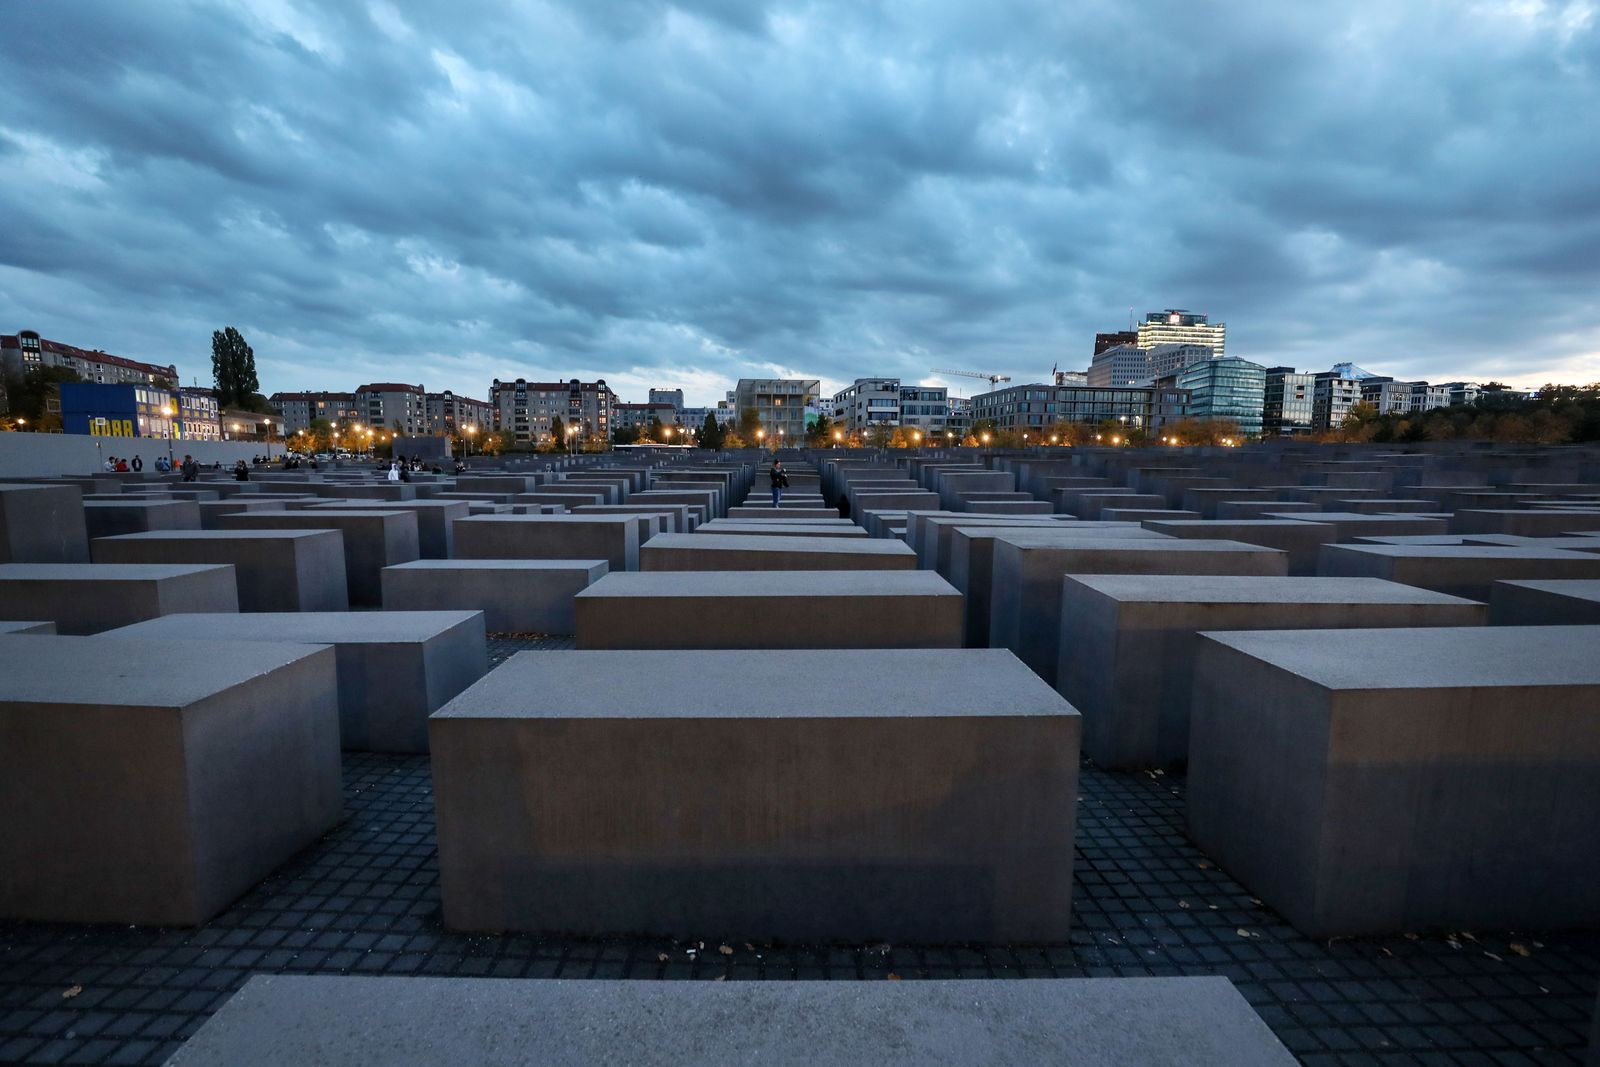 Memorial to the Murdered Jews of Europe in Berlin, Germany - 12 Oct 2019